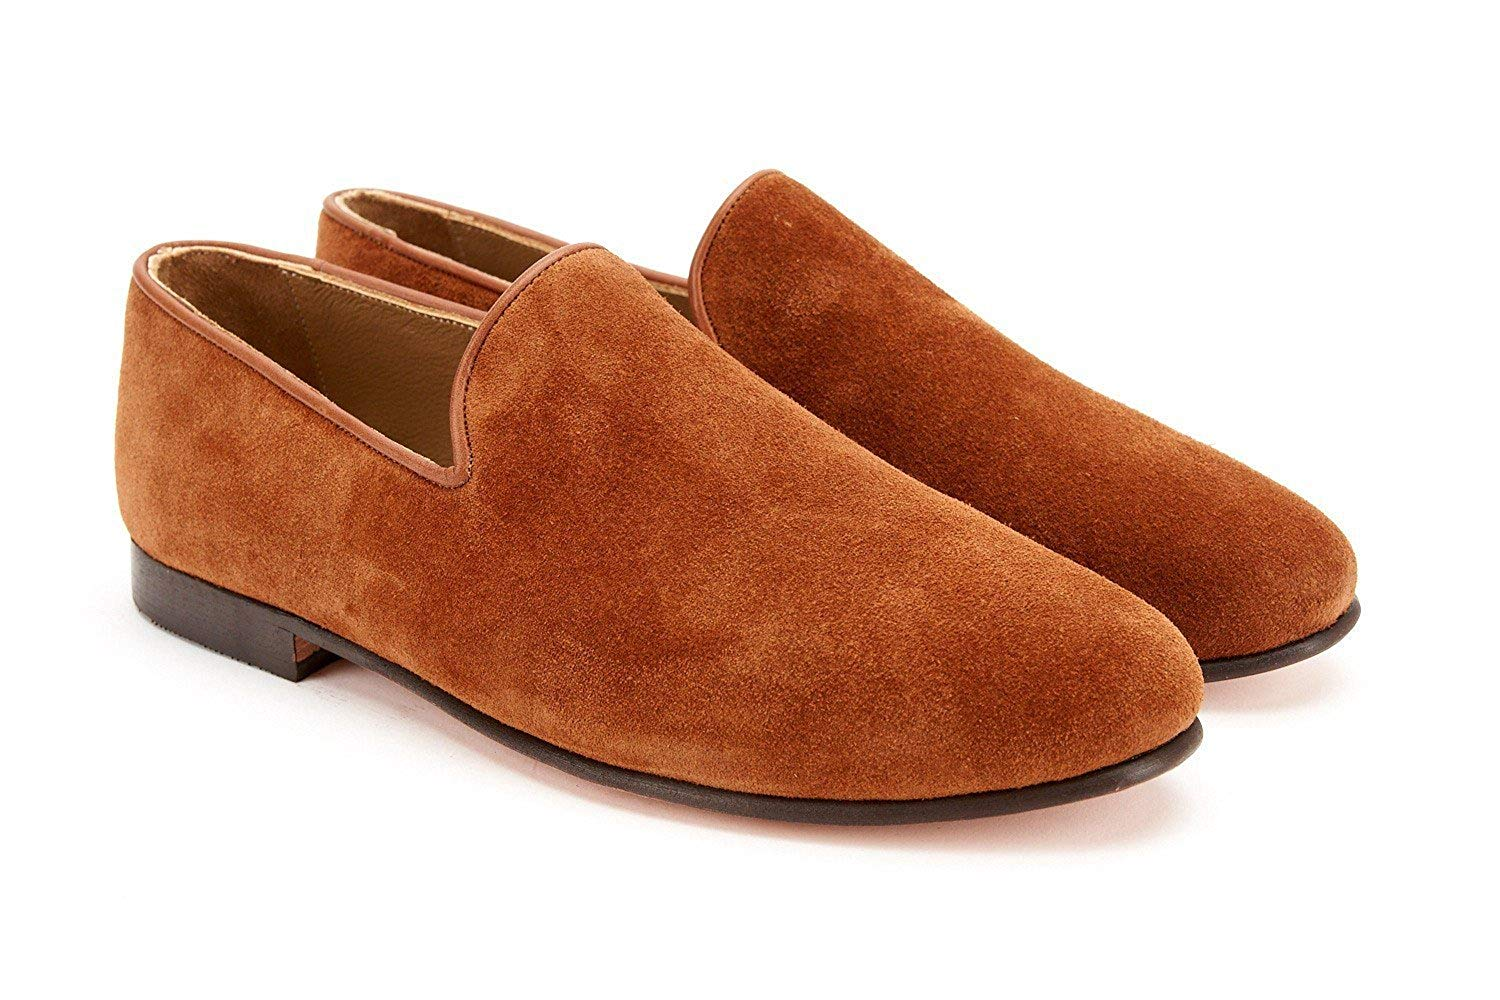 1b6572ddf9a Get Quotations · RES IPSA Snuff Suede Loafers